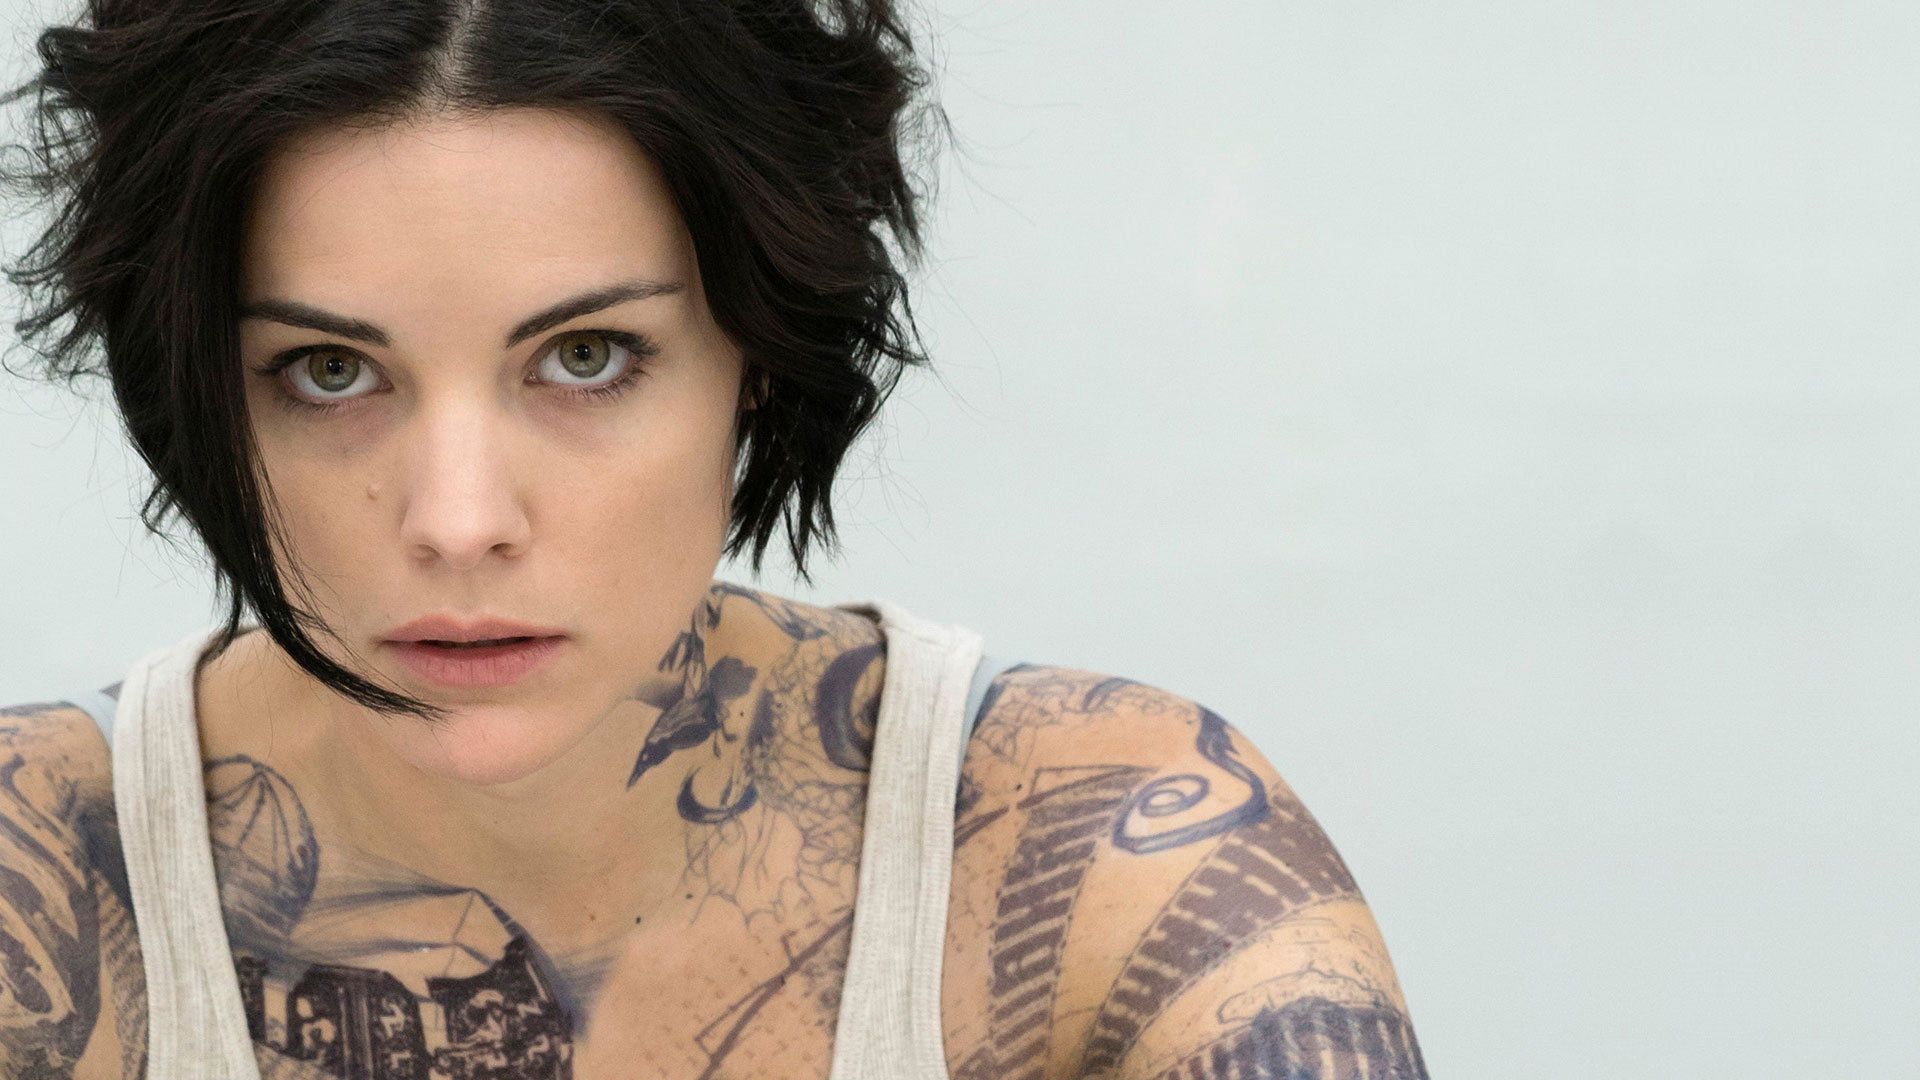 blindspot release date 2018 keep track of premiere